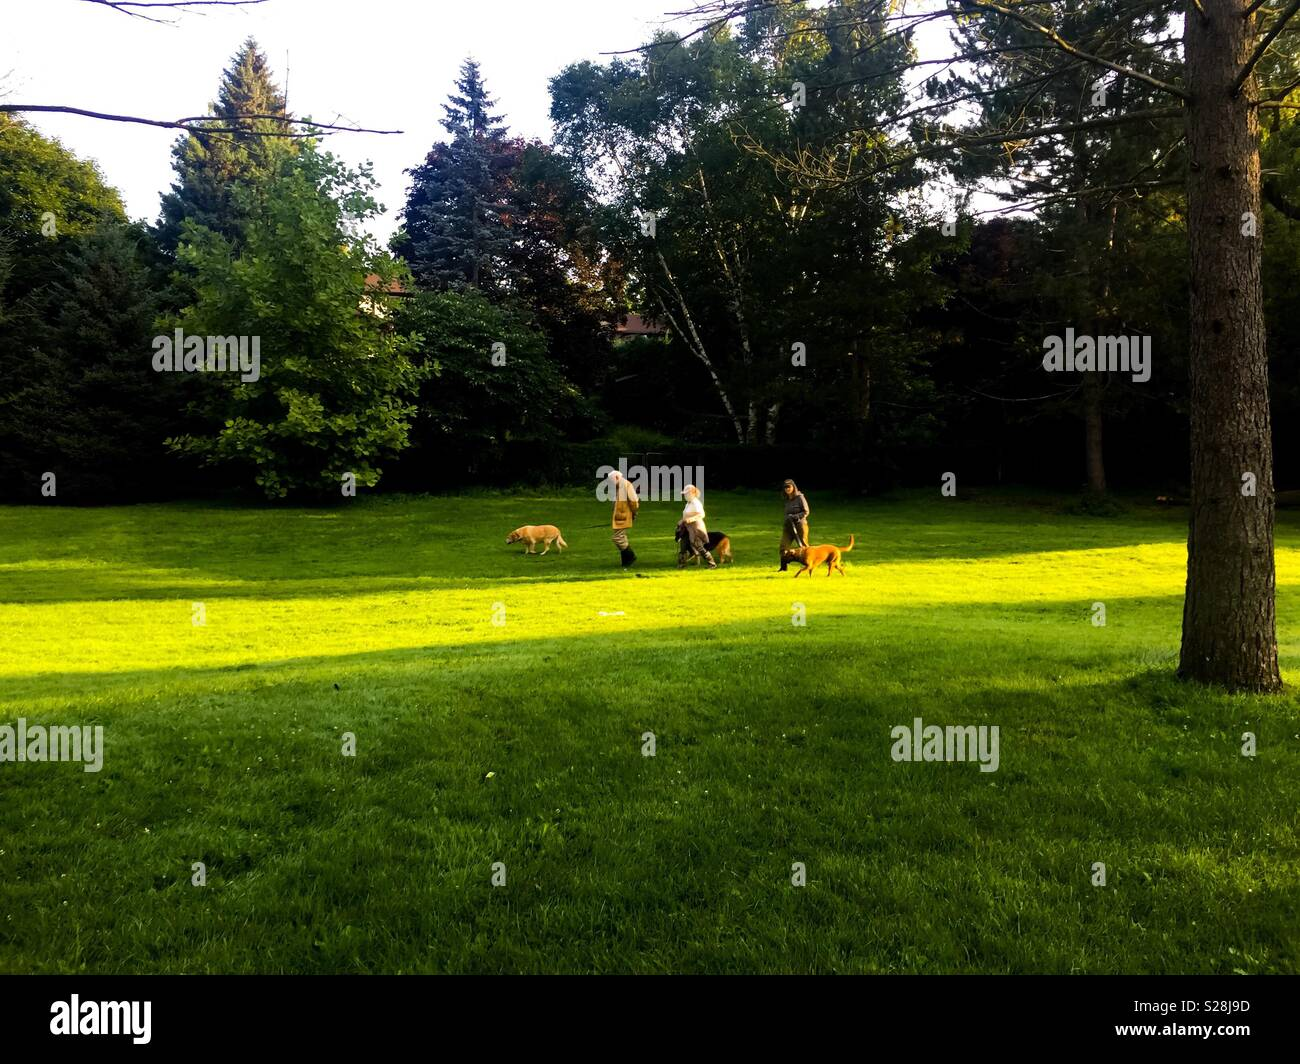 Dog walkers in a park - Stock Image